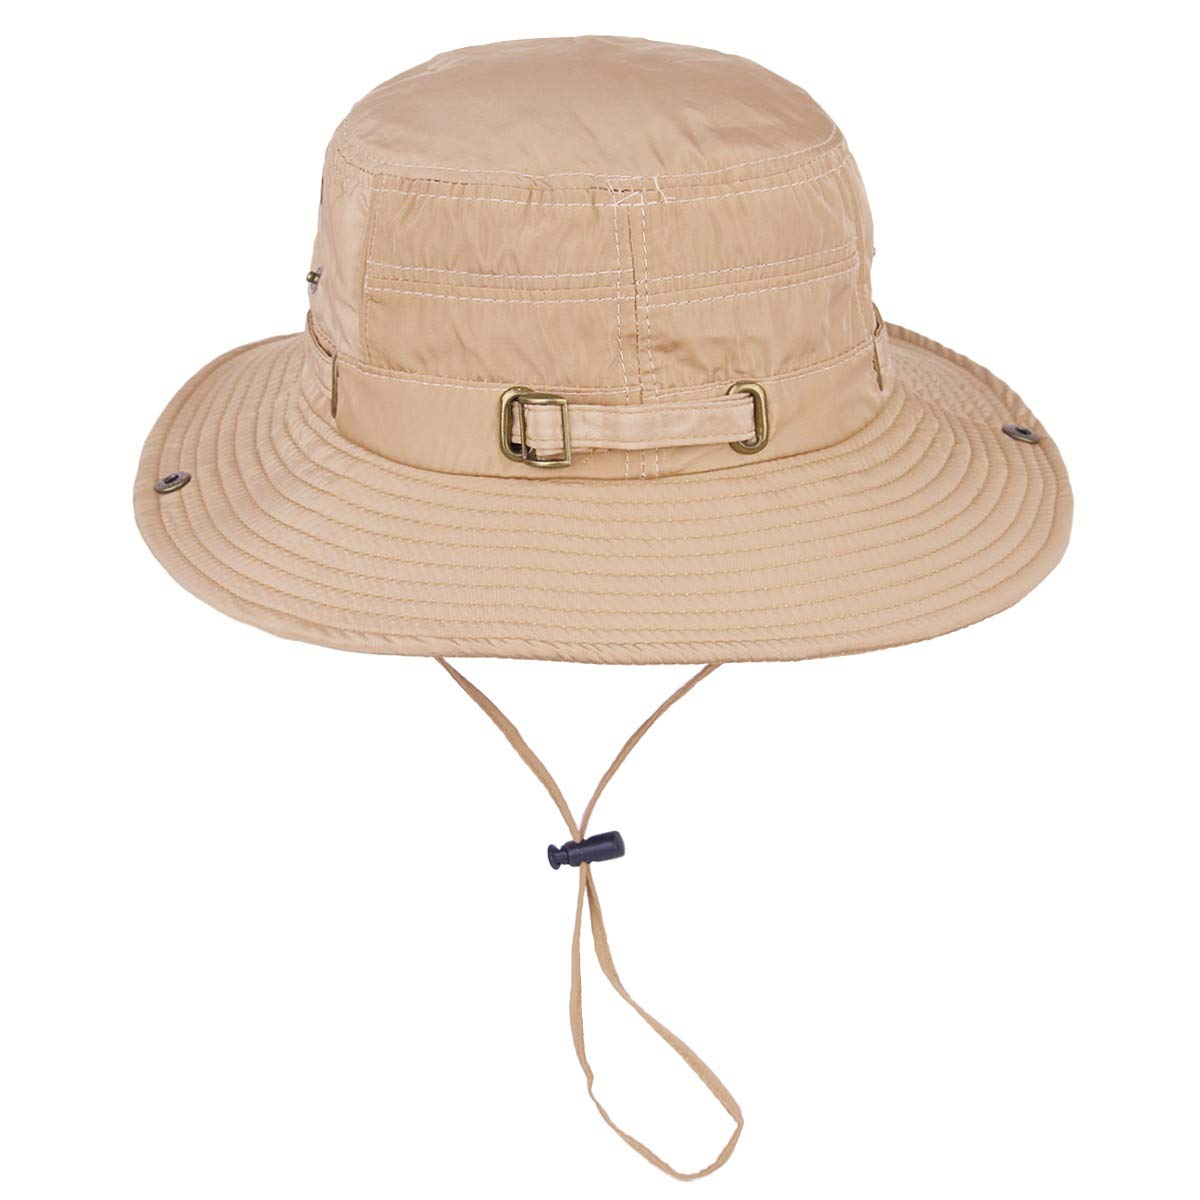 Sportmusies Wide Brim Boonie Hat Summer Bucket Caps for Camping Fishing Hiking Outdoor Travel Sun UV Protection Unisex